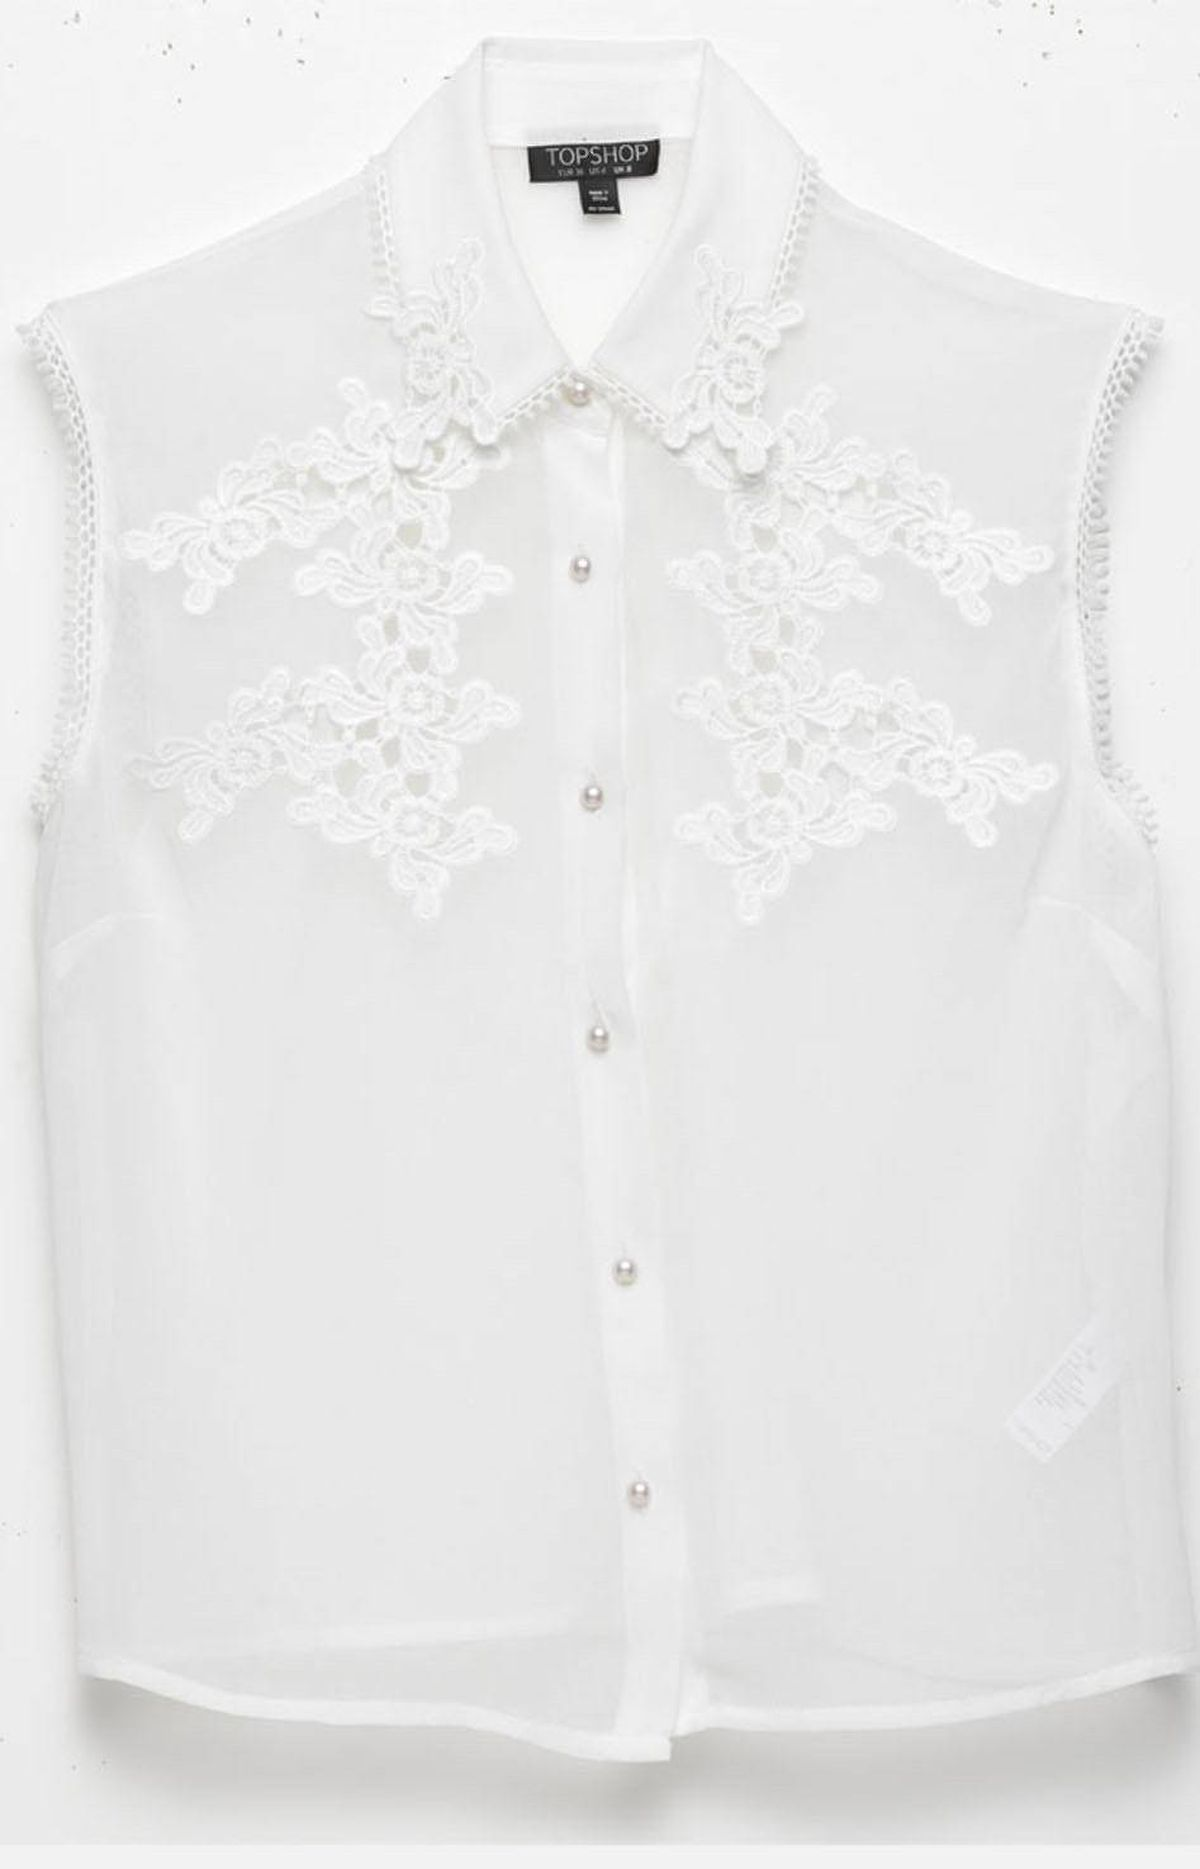 Sleeveless top with lace detailing by Topshop, $60 at The Bay (www.thebay.com).